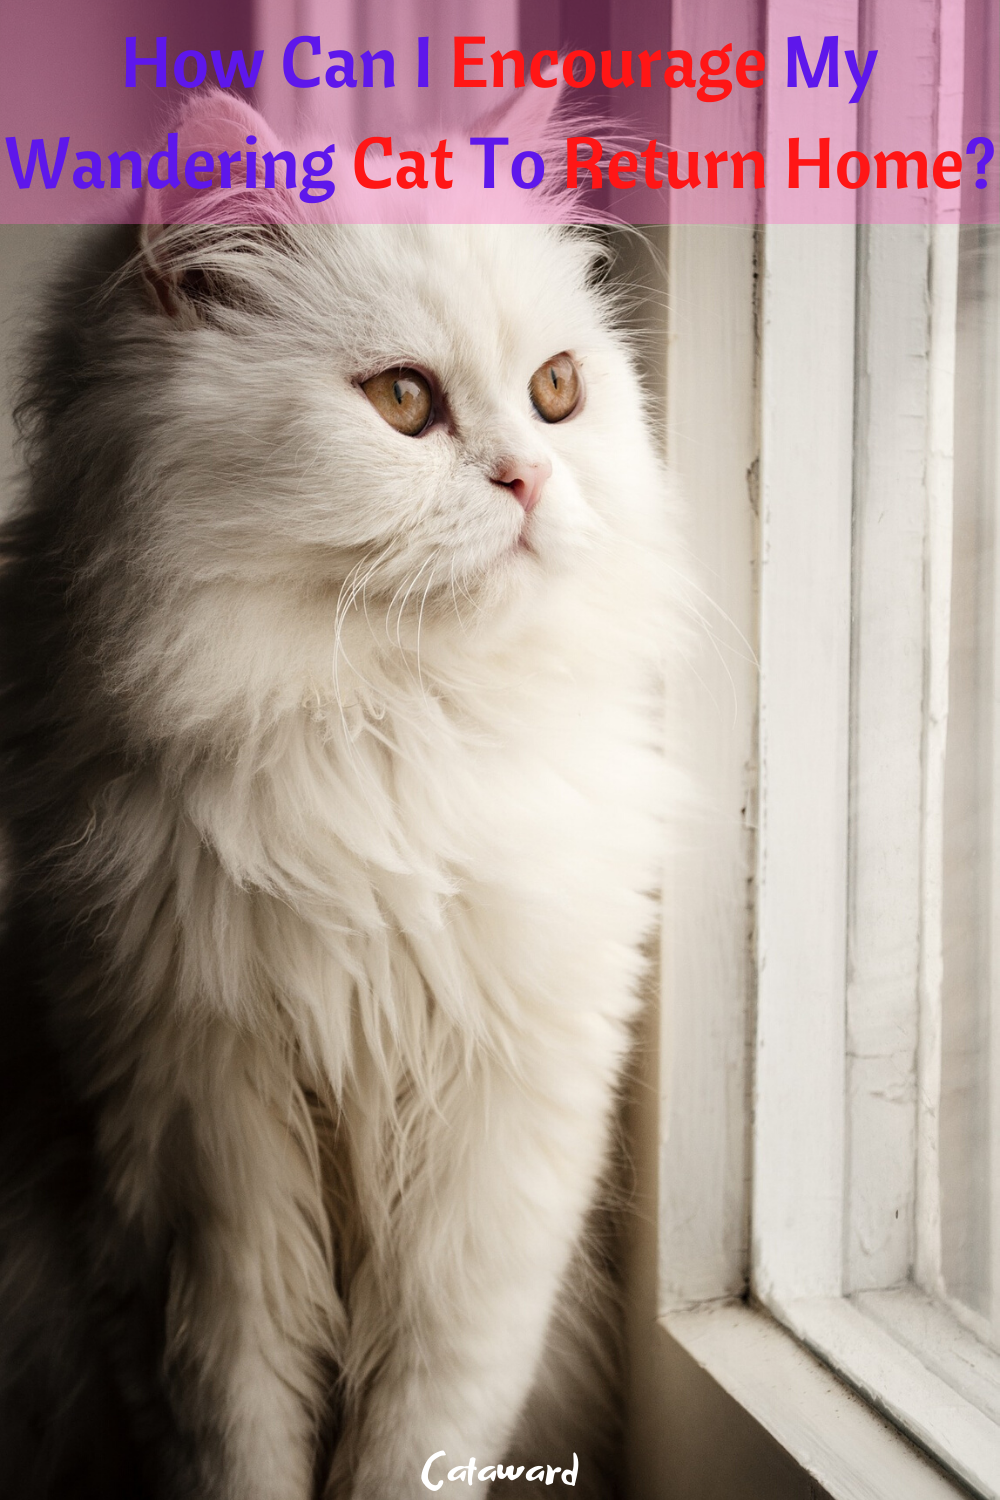 How to find a lost cat or enoucrage it to return home? Do